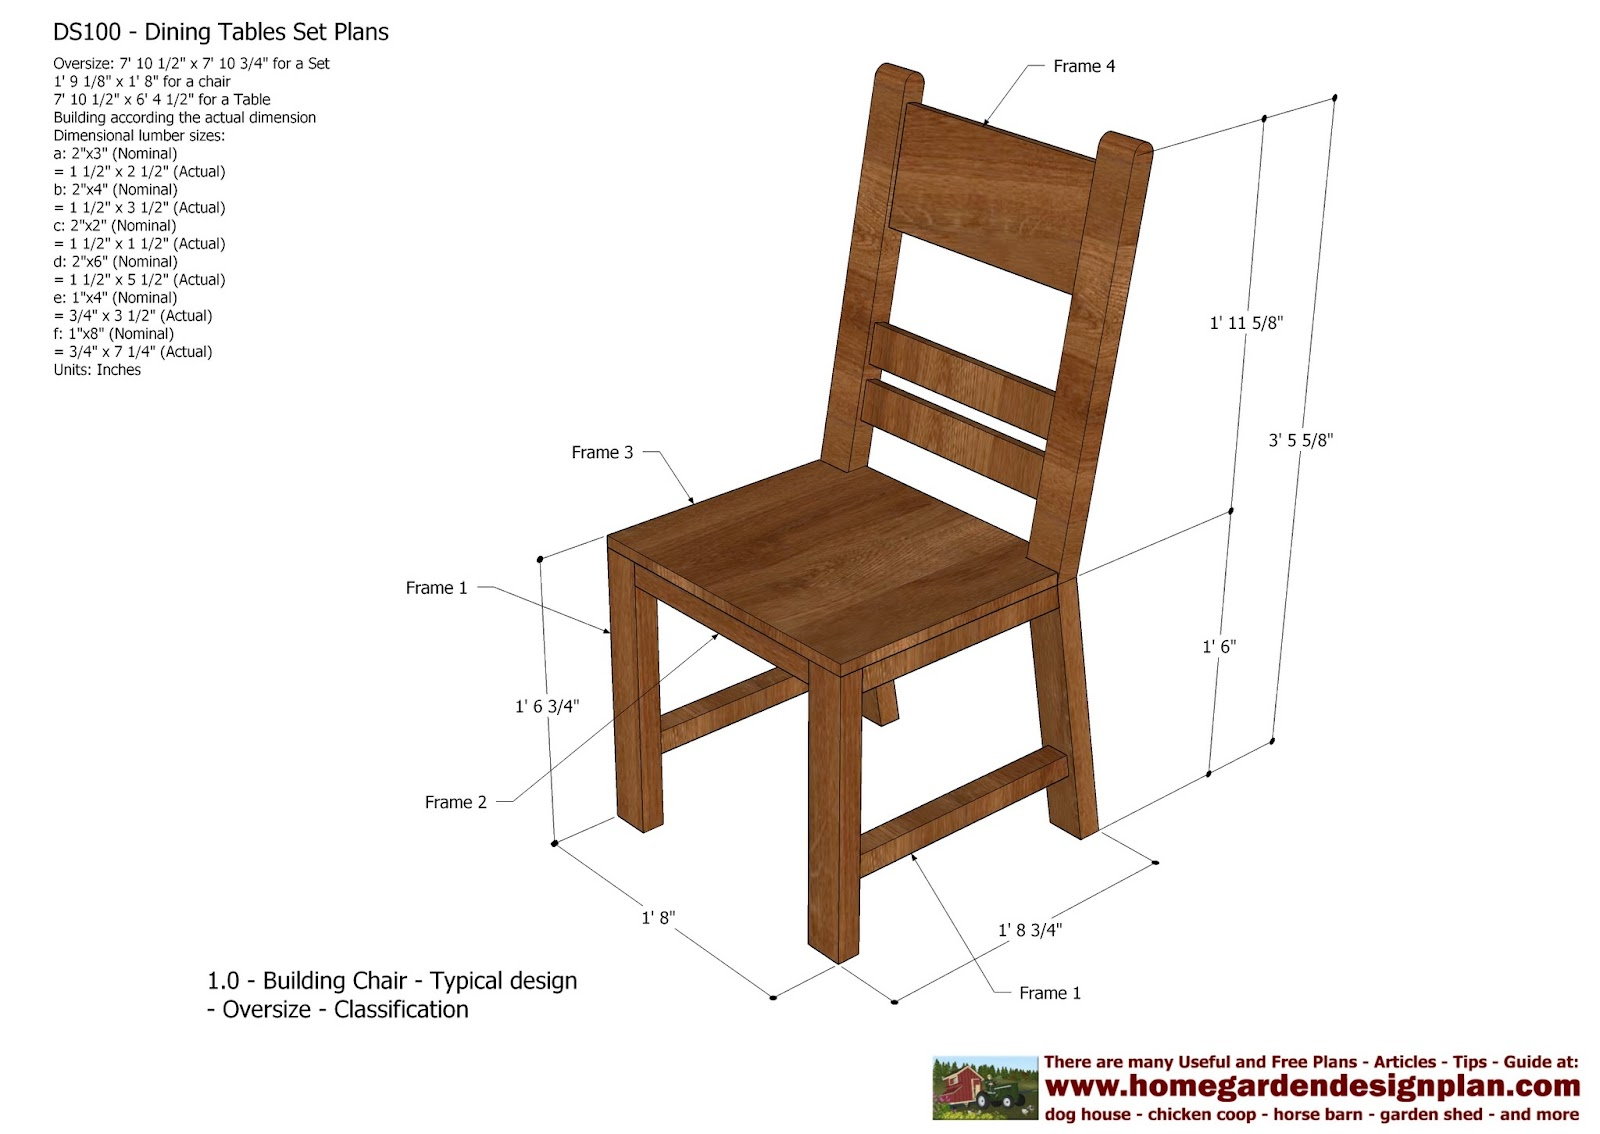 Wooden Chair Design Dining Childrens Chairs Home Garden Plans Ds100 Table Set